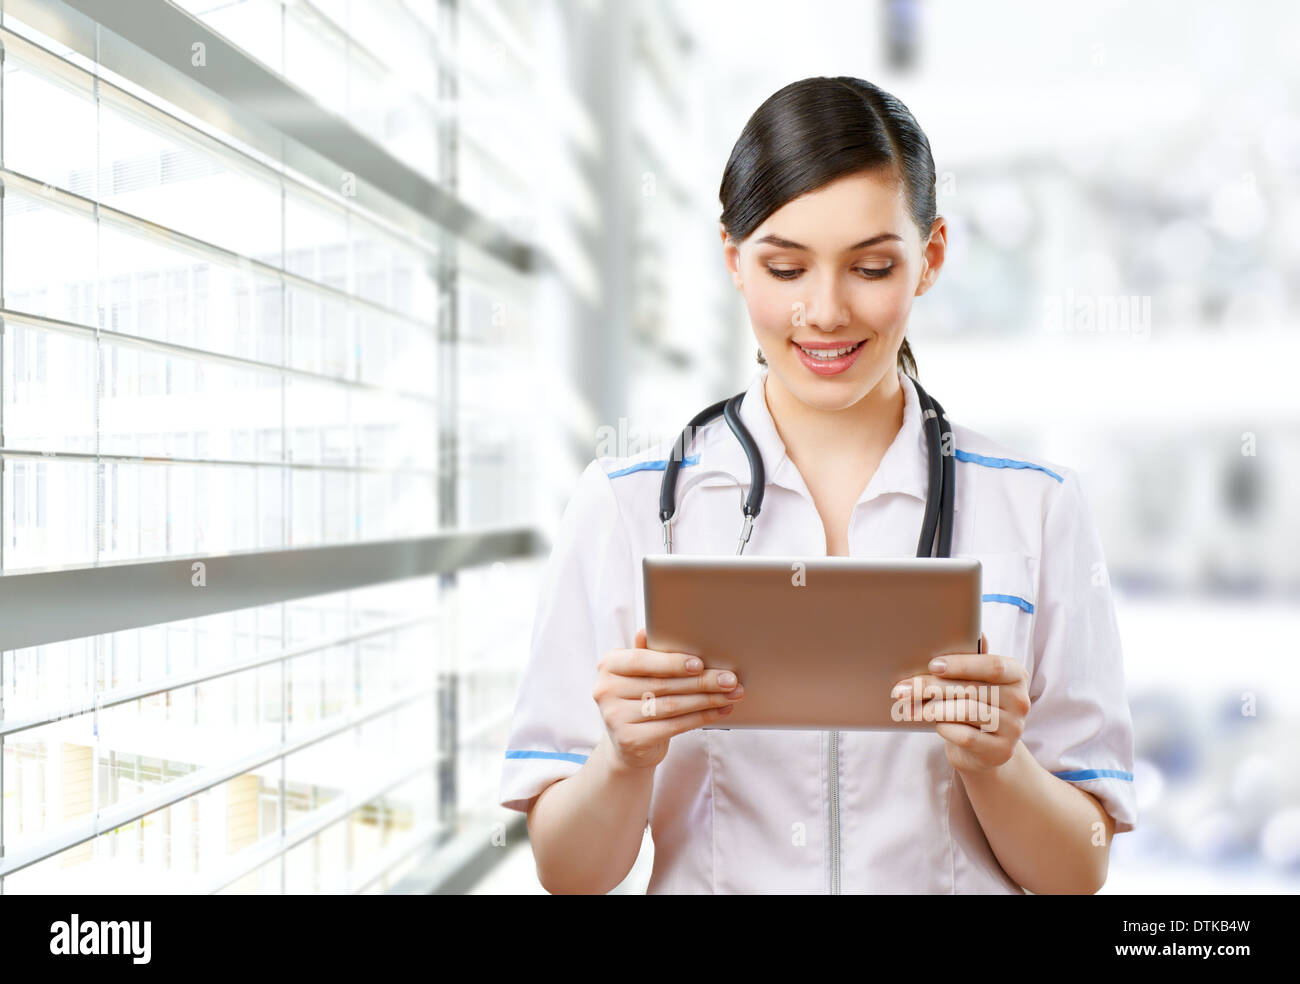 a woman holding a tablet pc - Stock Image